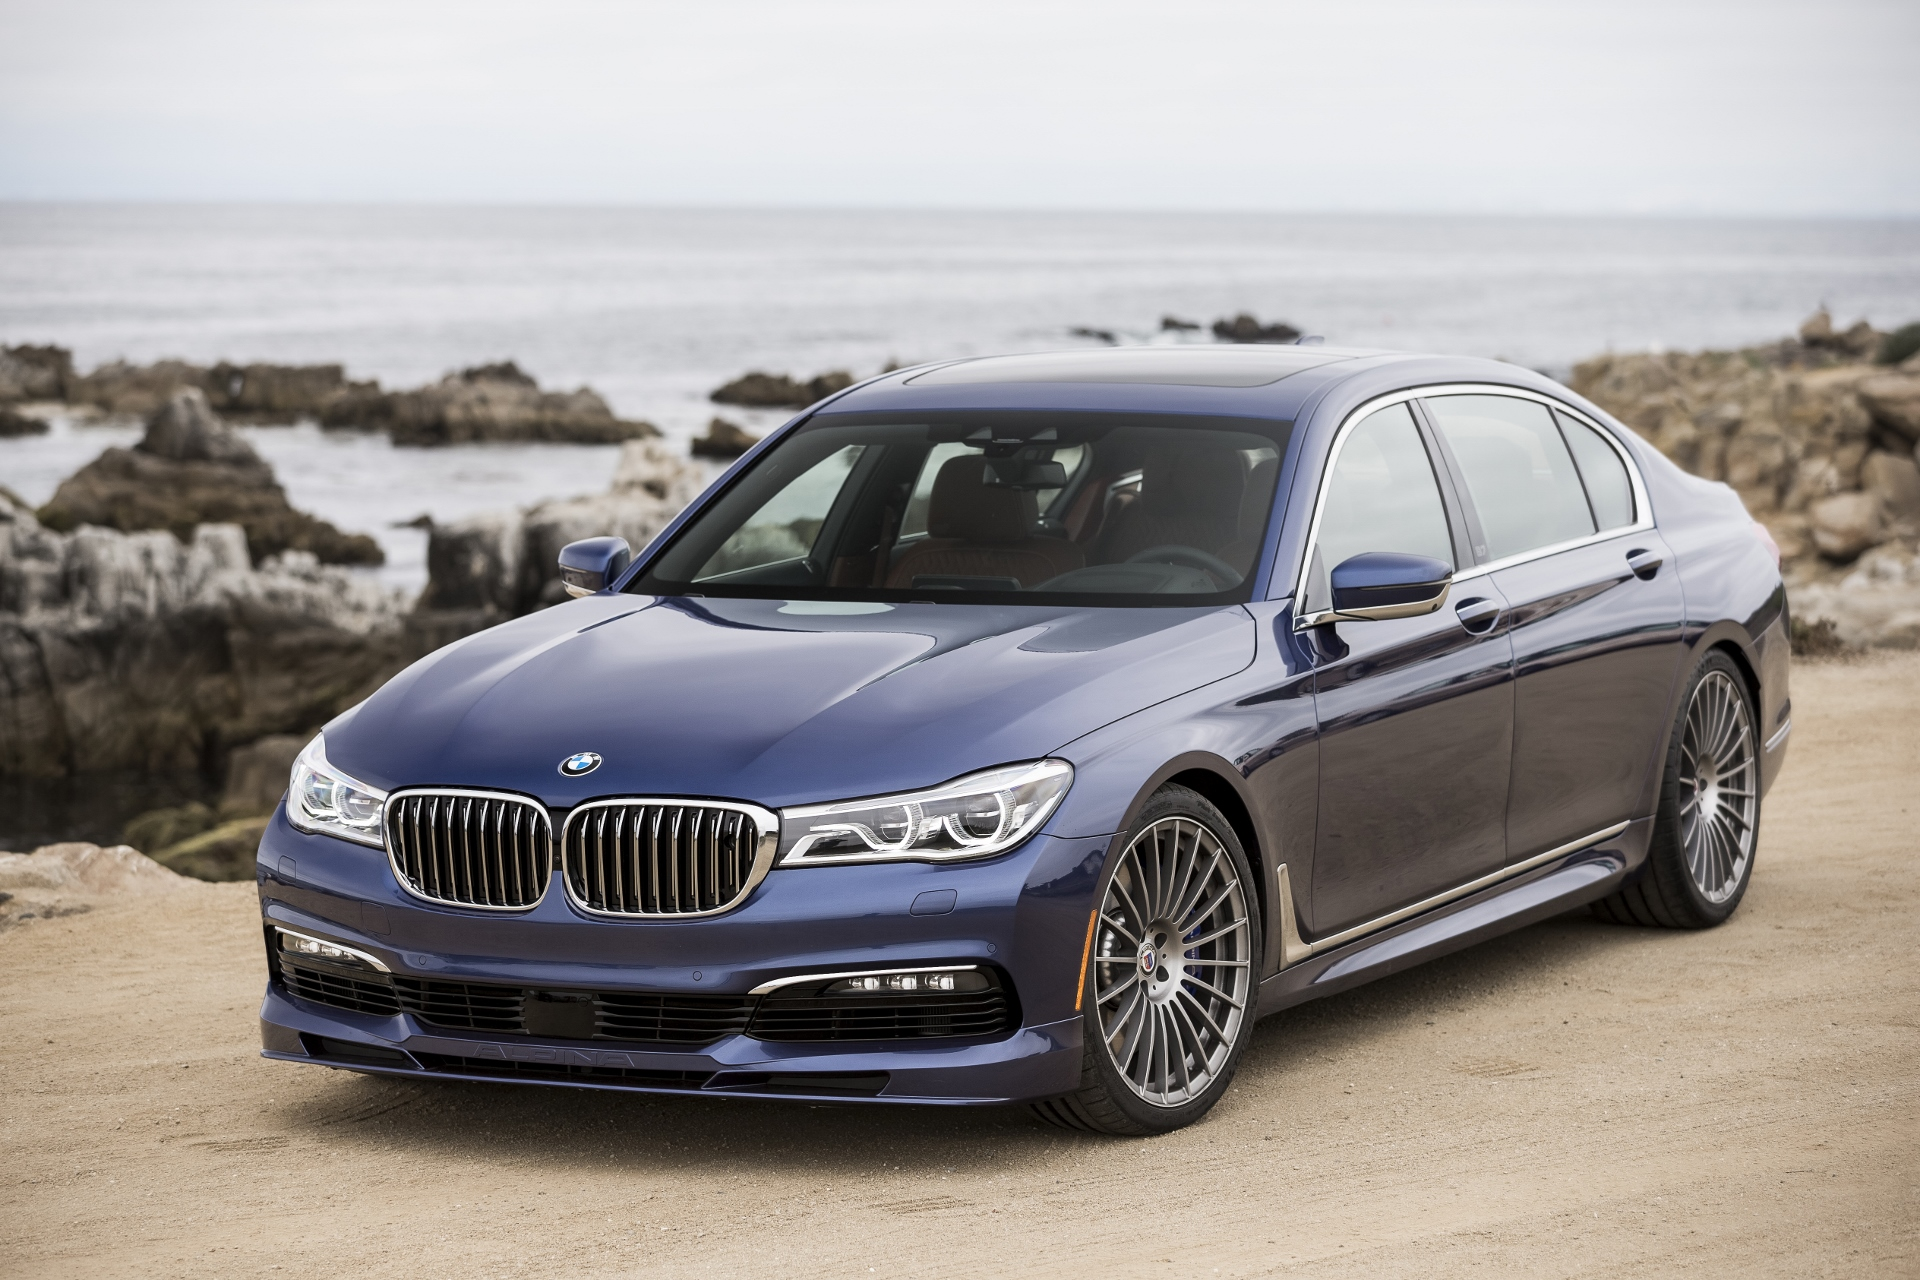 BMW Alpina B First Drive Review A Better BMW - Bmw 750i alpina